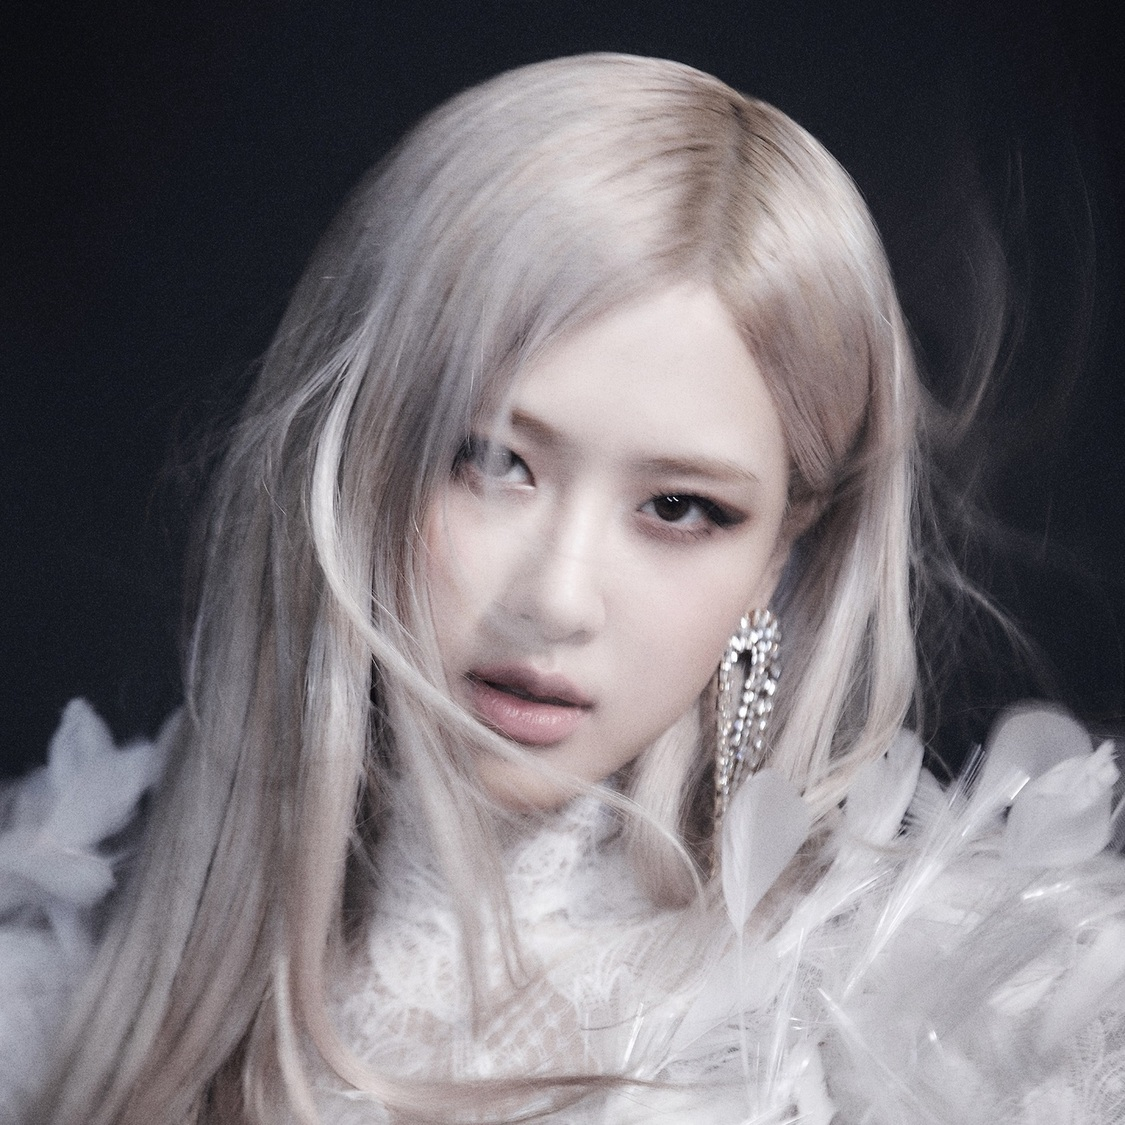 ROSÉ From BLACKPINK、3/30放送『スッキリ』で「On the Ground」をパフォーマンス決定!